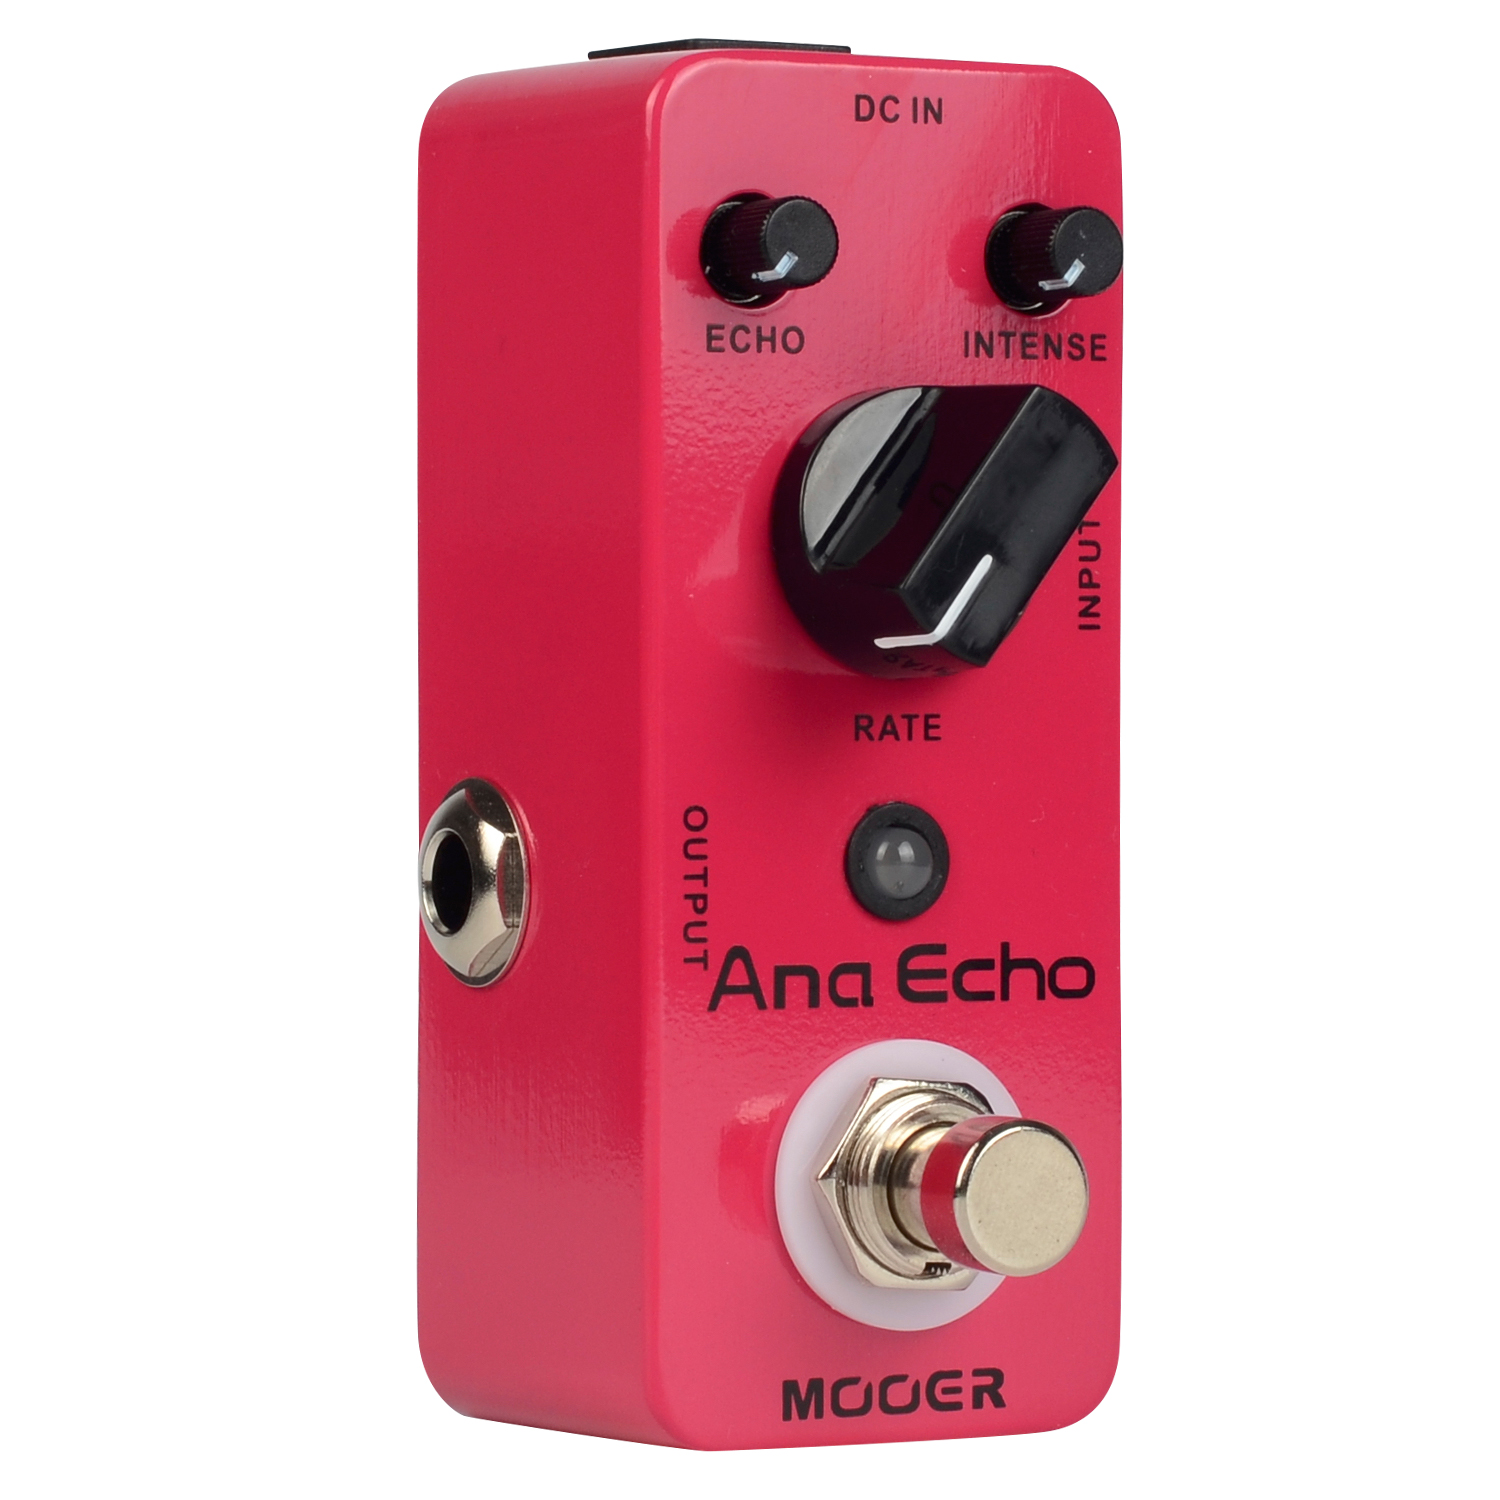 Mooer Ana Echo Analog Delay Mini Guitar Effects Pedal True Bypass Clear Smooth Sound MAD1 aroma adr 3 dumbler amp simulator guitar effect pedal mini single pedals with true bypass aluminium alloy guitar accessories